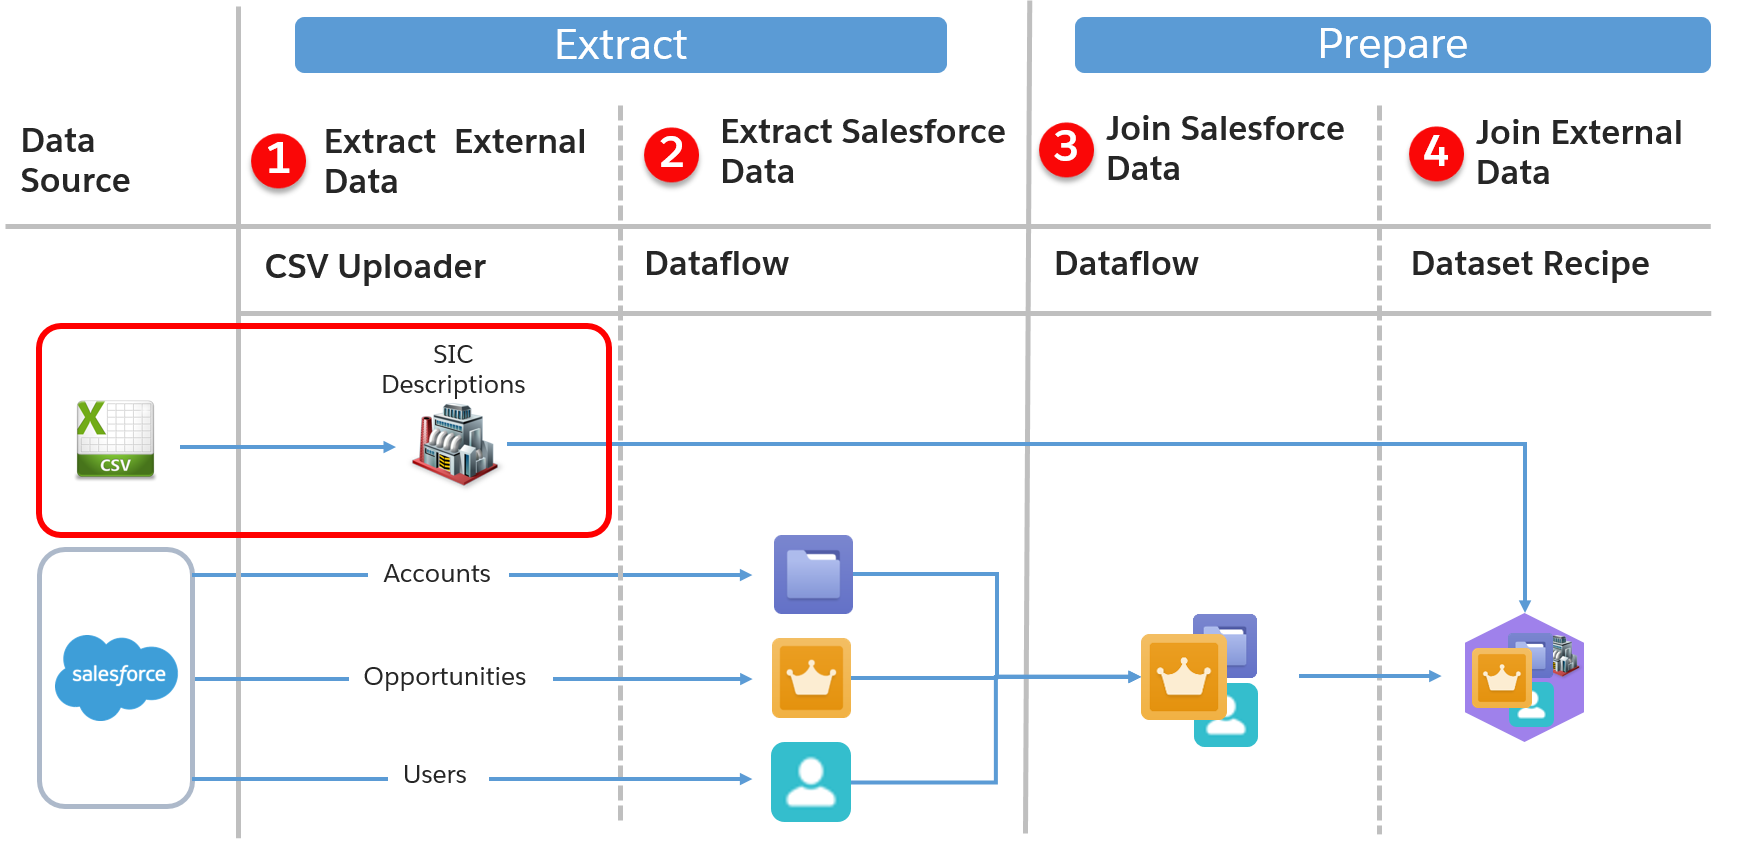 Data journey map with extract external data process highlighted